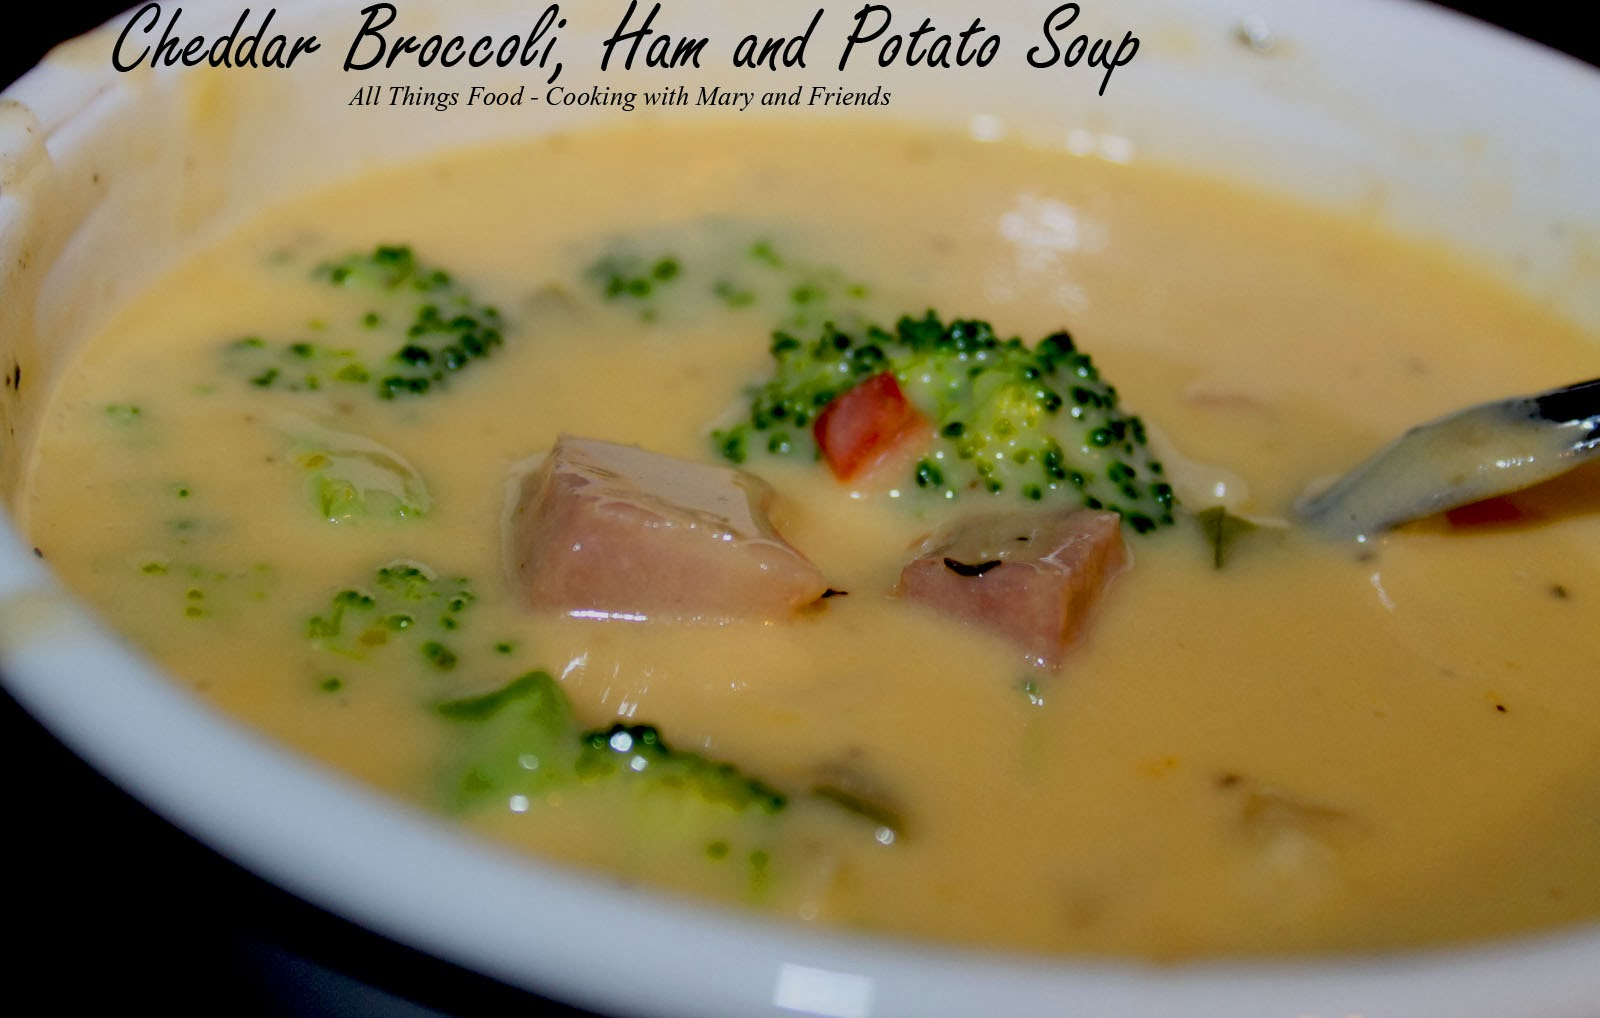 Cooking With Mary and Friends: Cheddar Broccoli, Ham and Potato Soup